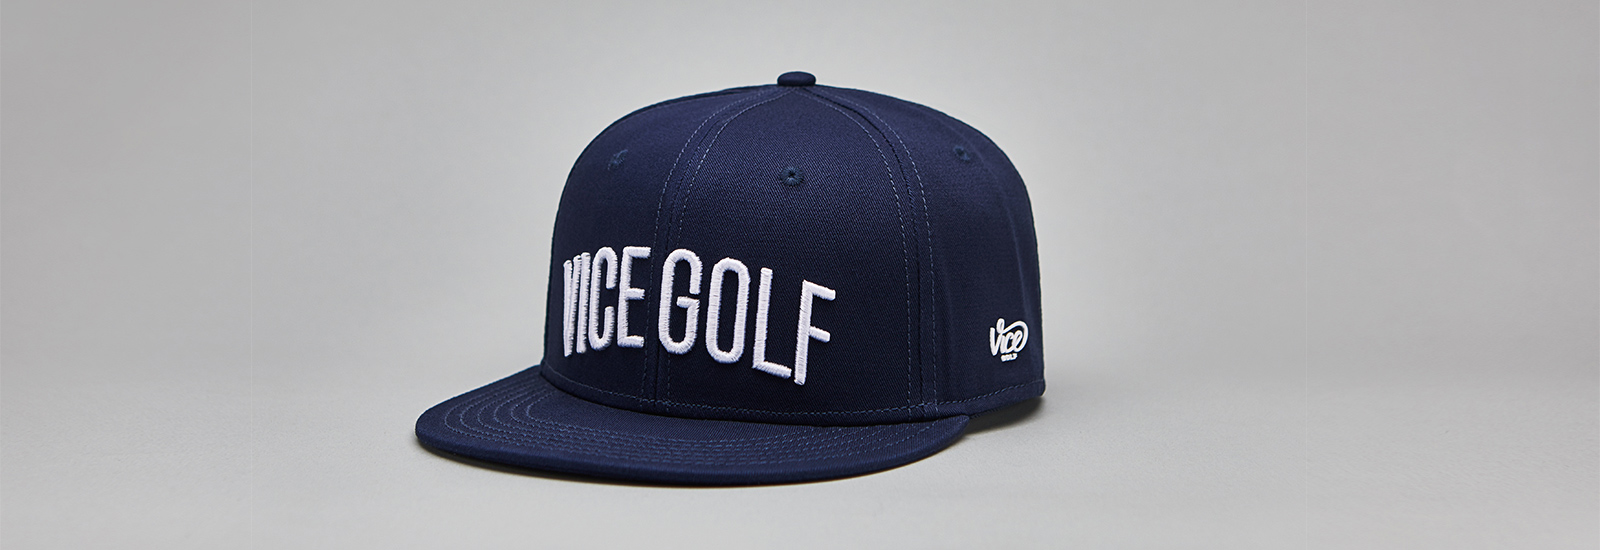 vicegolf_cap_college_navy_slider01_desktop.jpg